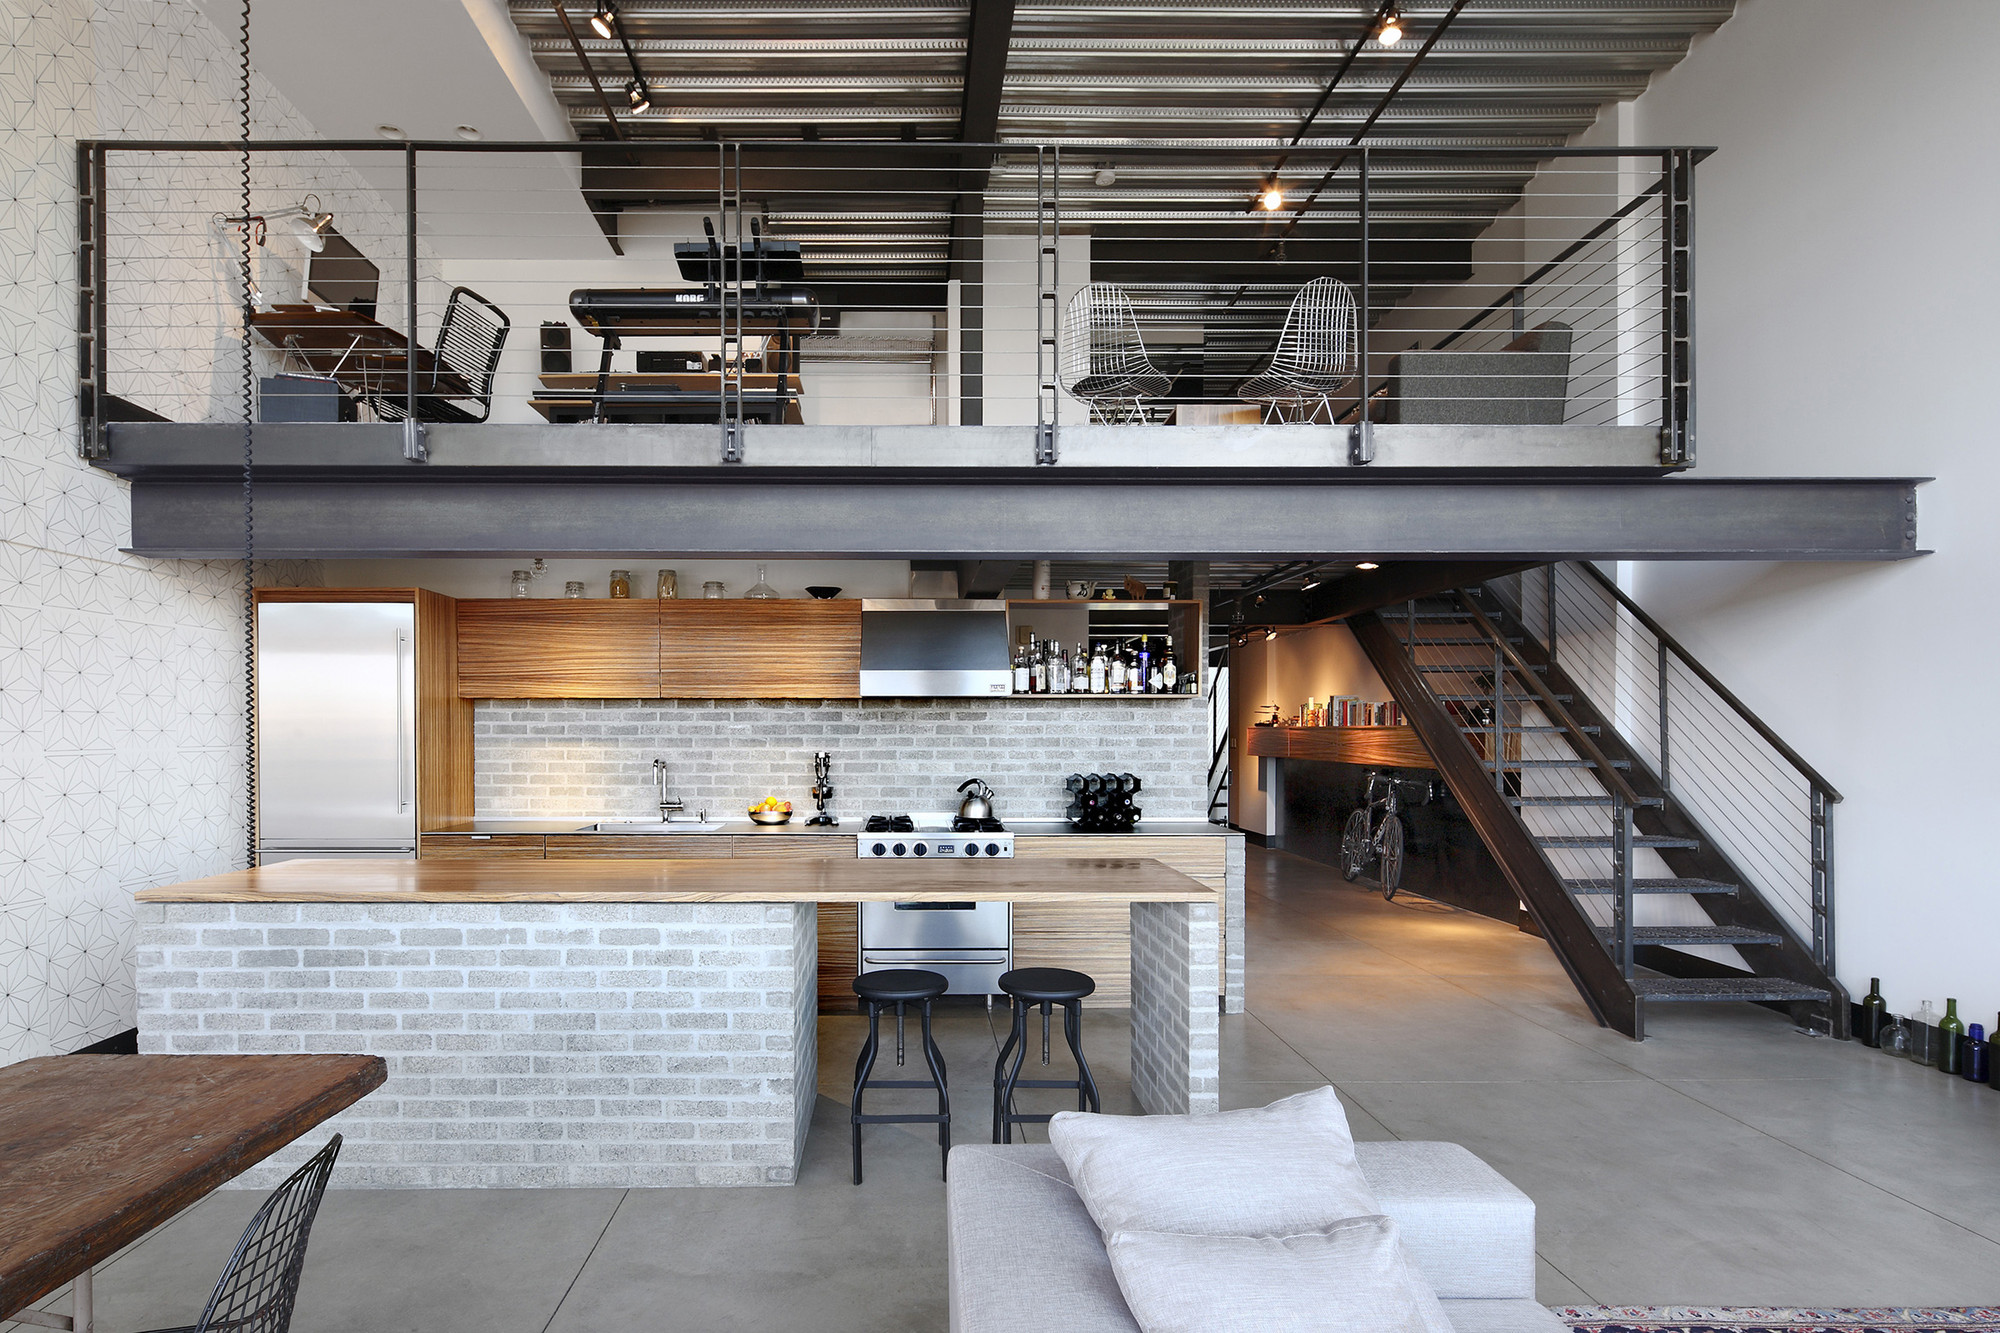 Gorgeous Loft Capitol Hill Loft Renovation Shed Architecture Design 10x16 Shed Loft 12x24 Shed Capitol Hill Loft Mark Woods Gallery houzz 01 Shed With Loft